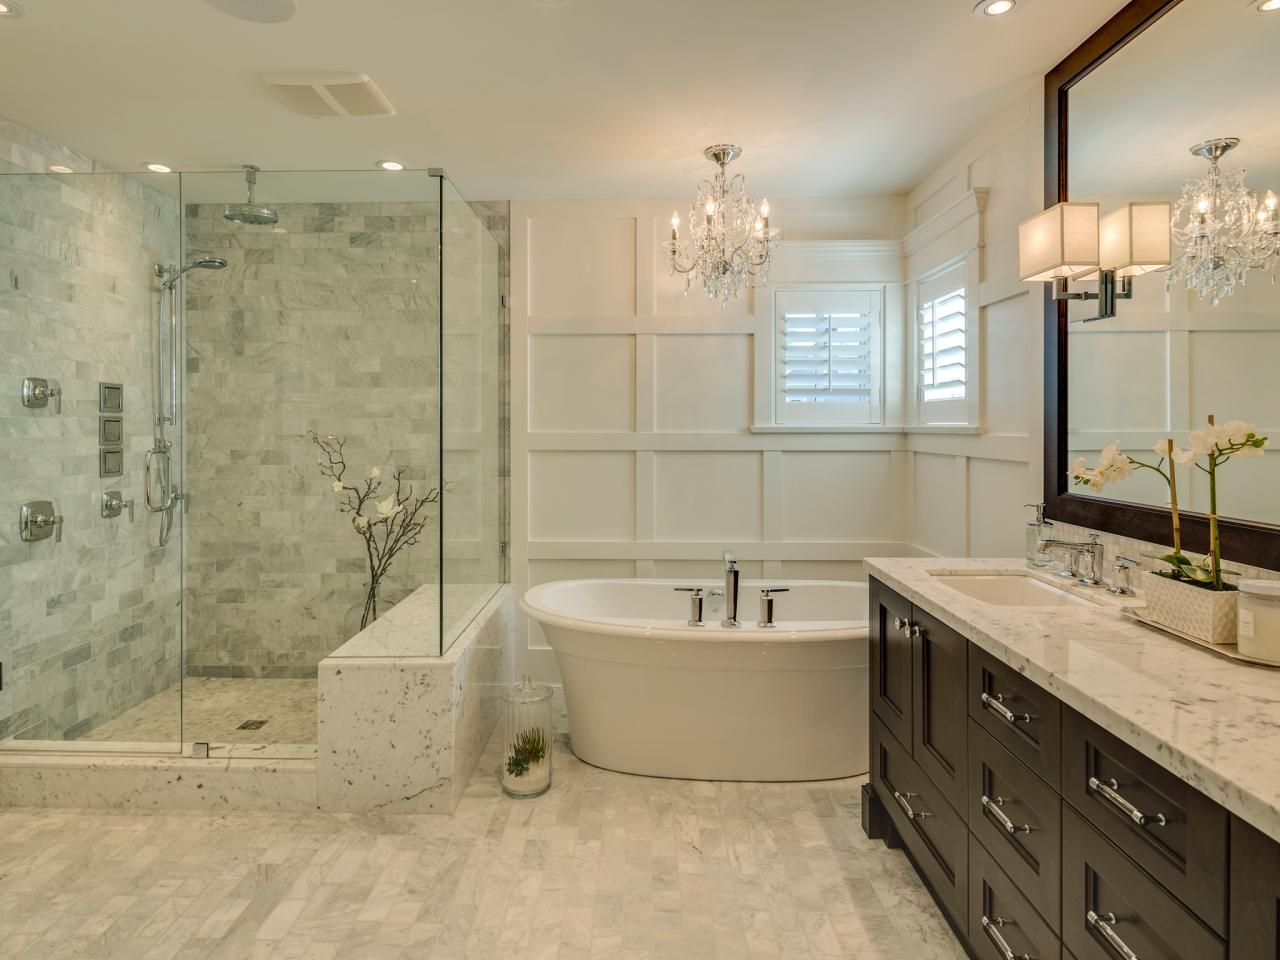 Best 25+ Master bath ideas on Pinterest | Master bathrooms, Master ...